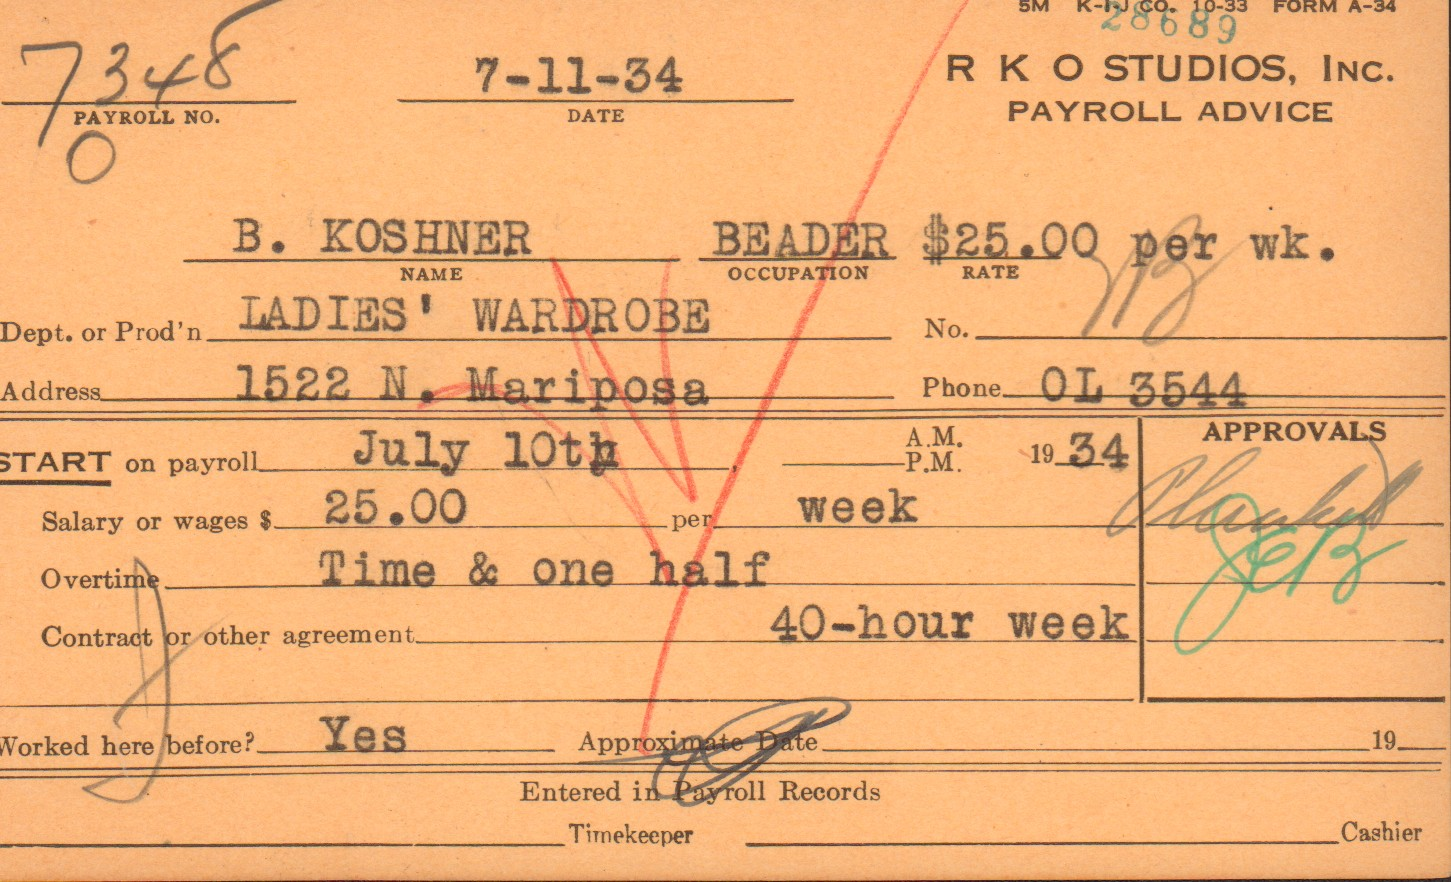 B. Koshner payroll card